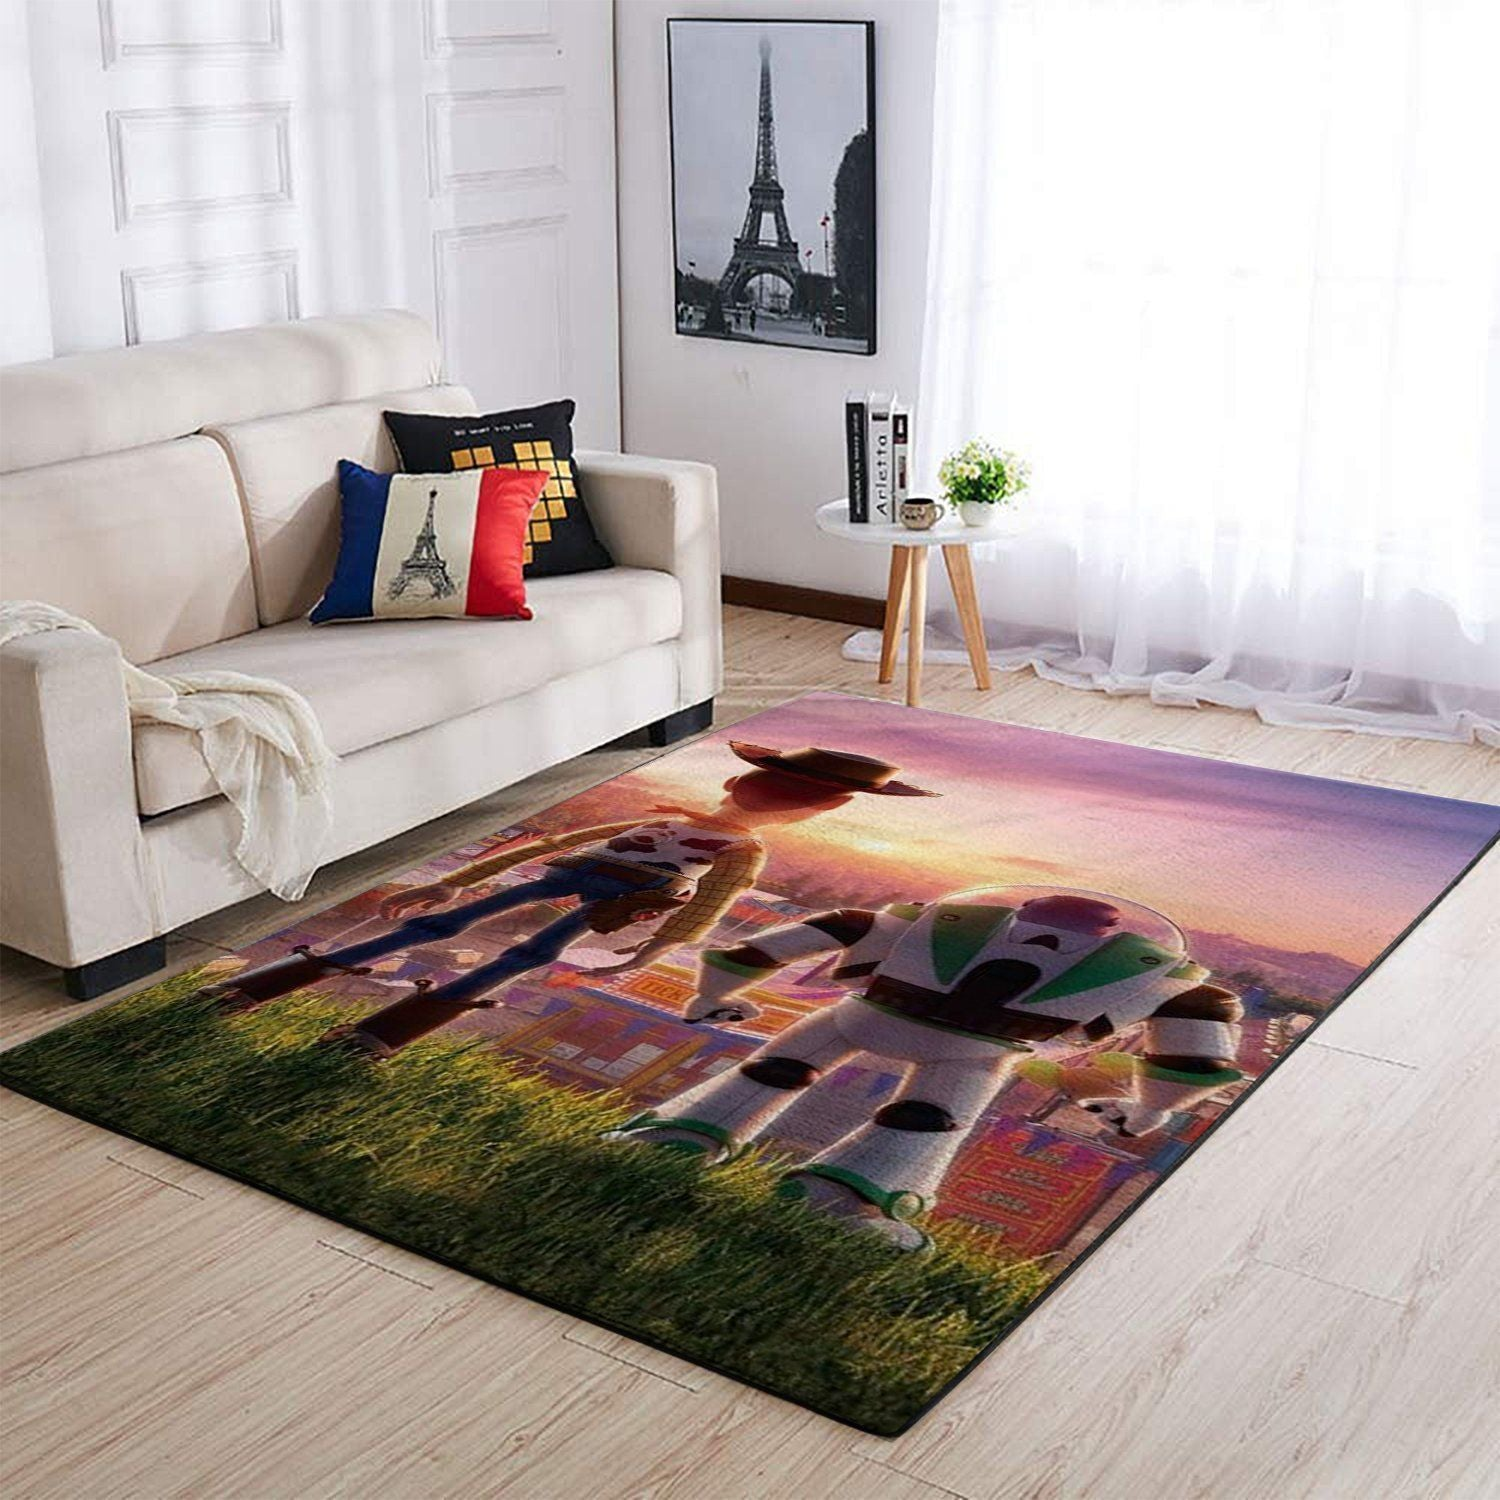 Disney Toy Story Area Rugs / Movie Living Room Carpet, Custom Floor Decor 3